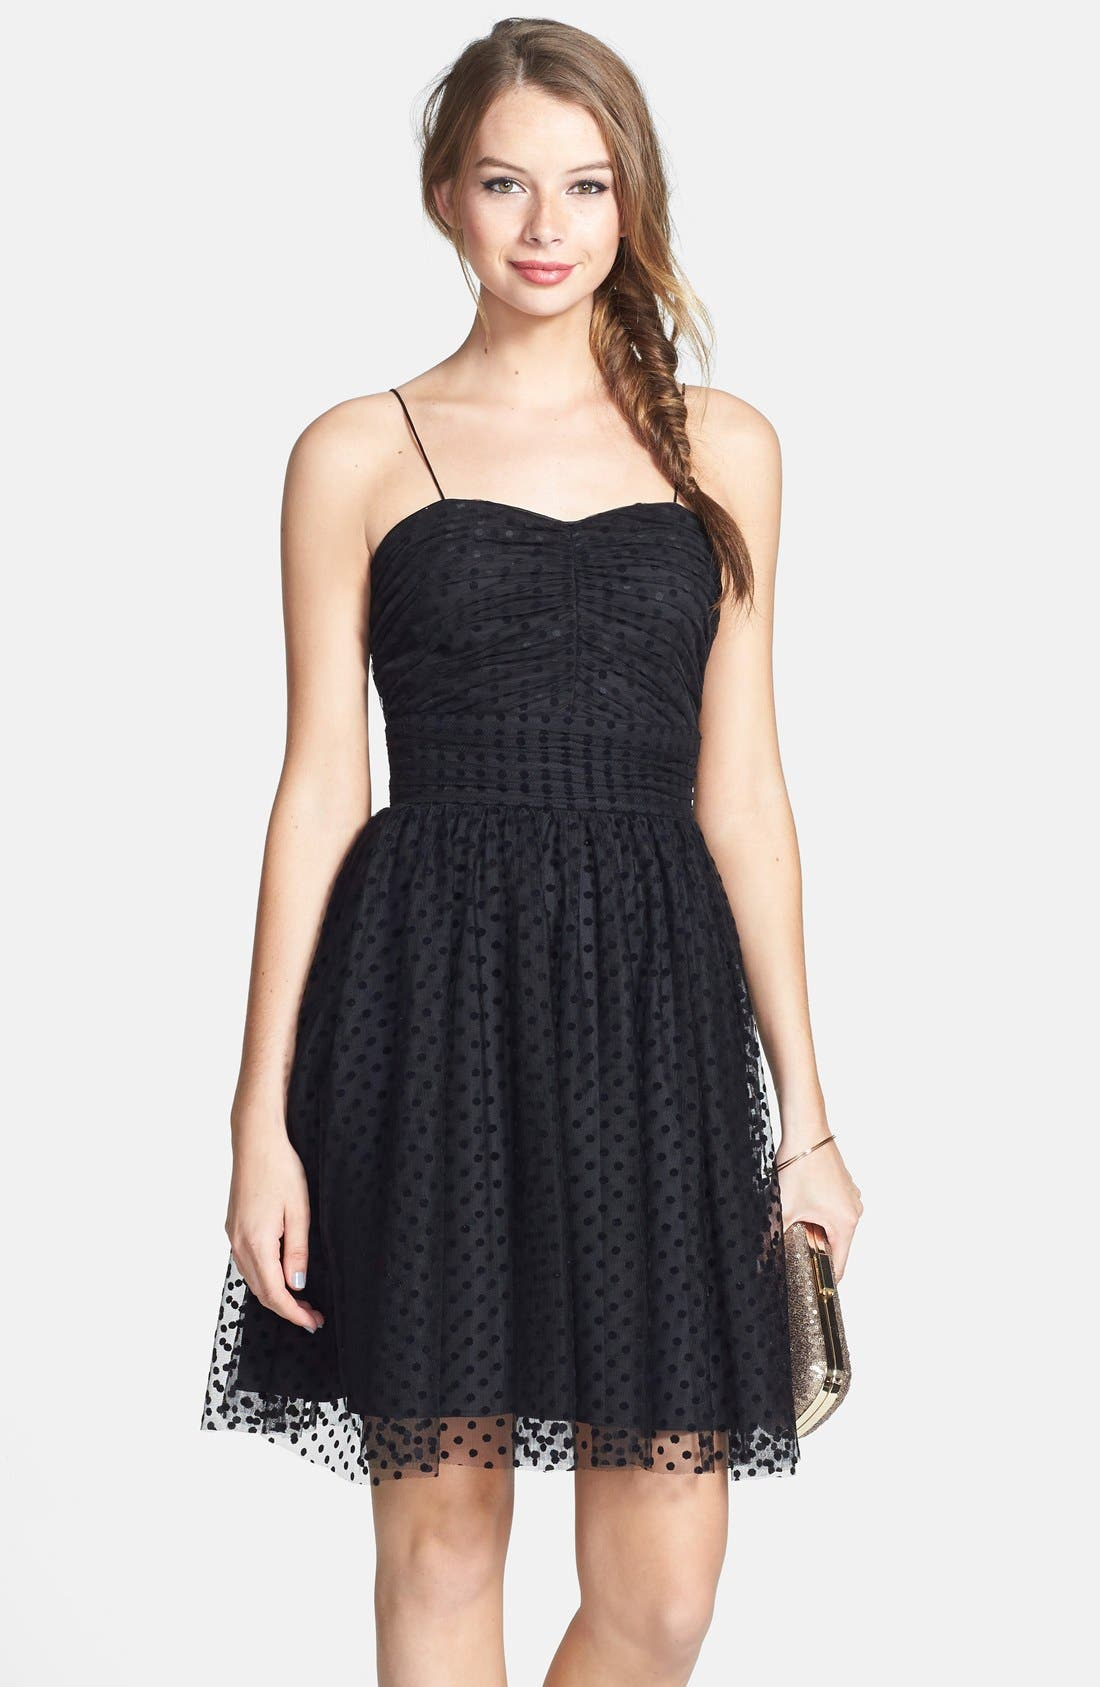 Main Image - Hailey by Adrianna Papell Polka Dot Fit & Flare Dress